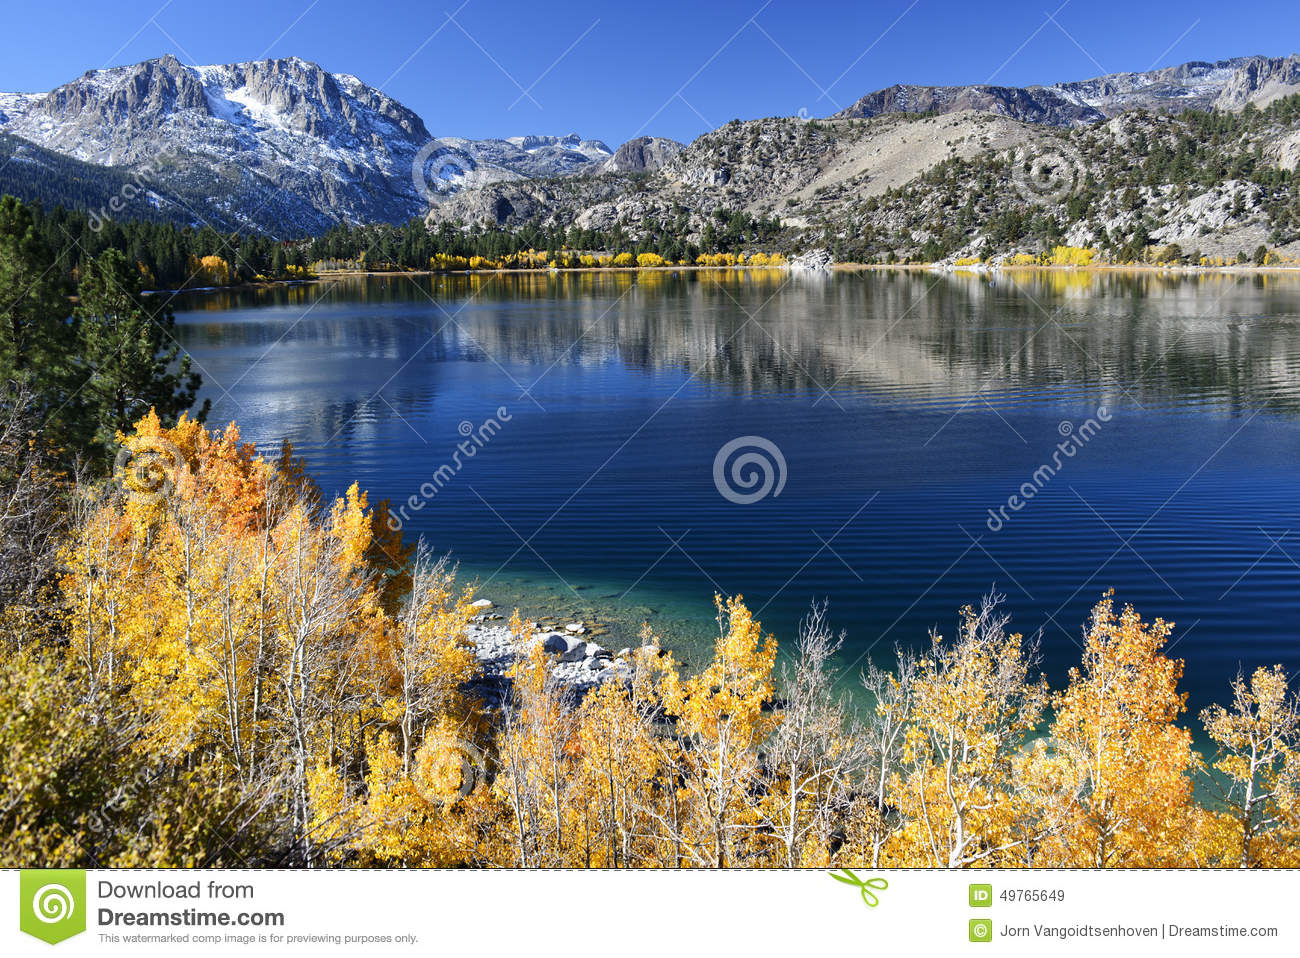 Nevada Fall clipart #12, Download drawings